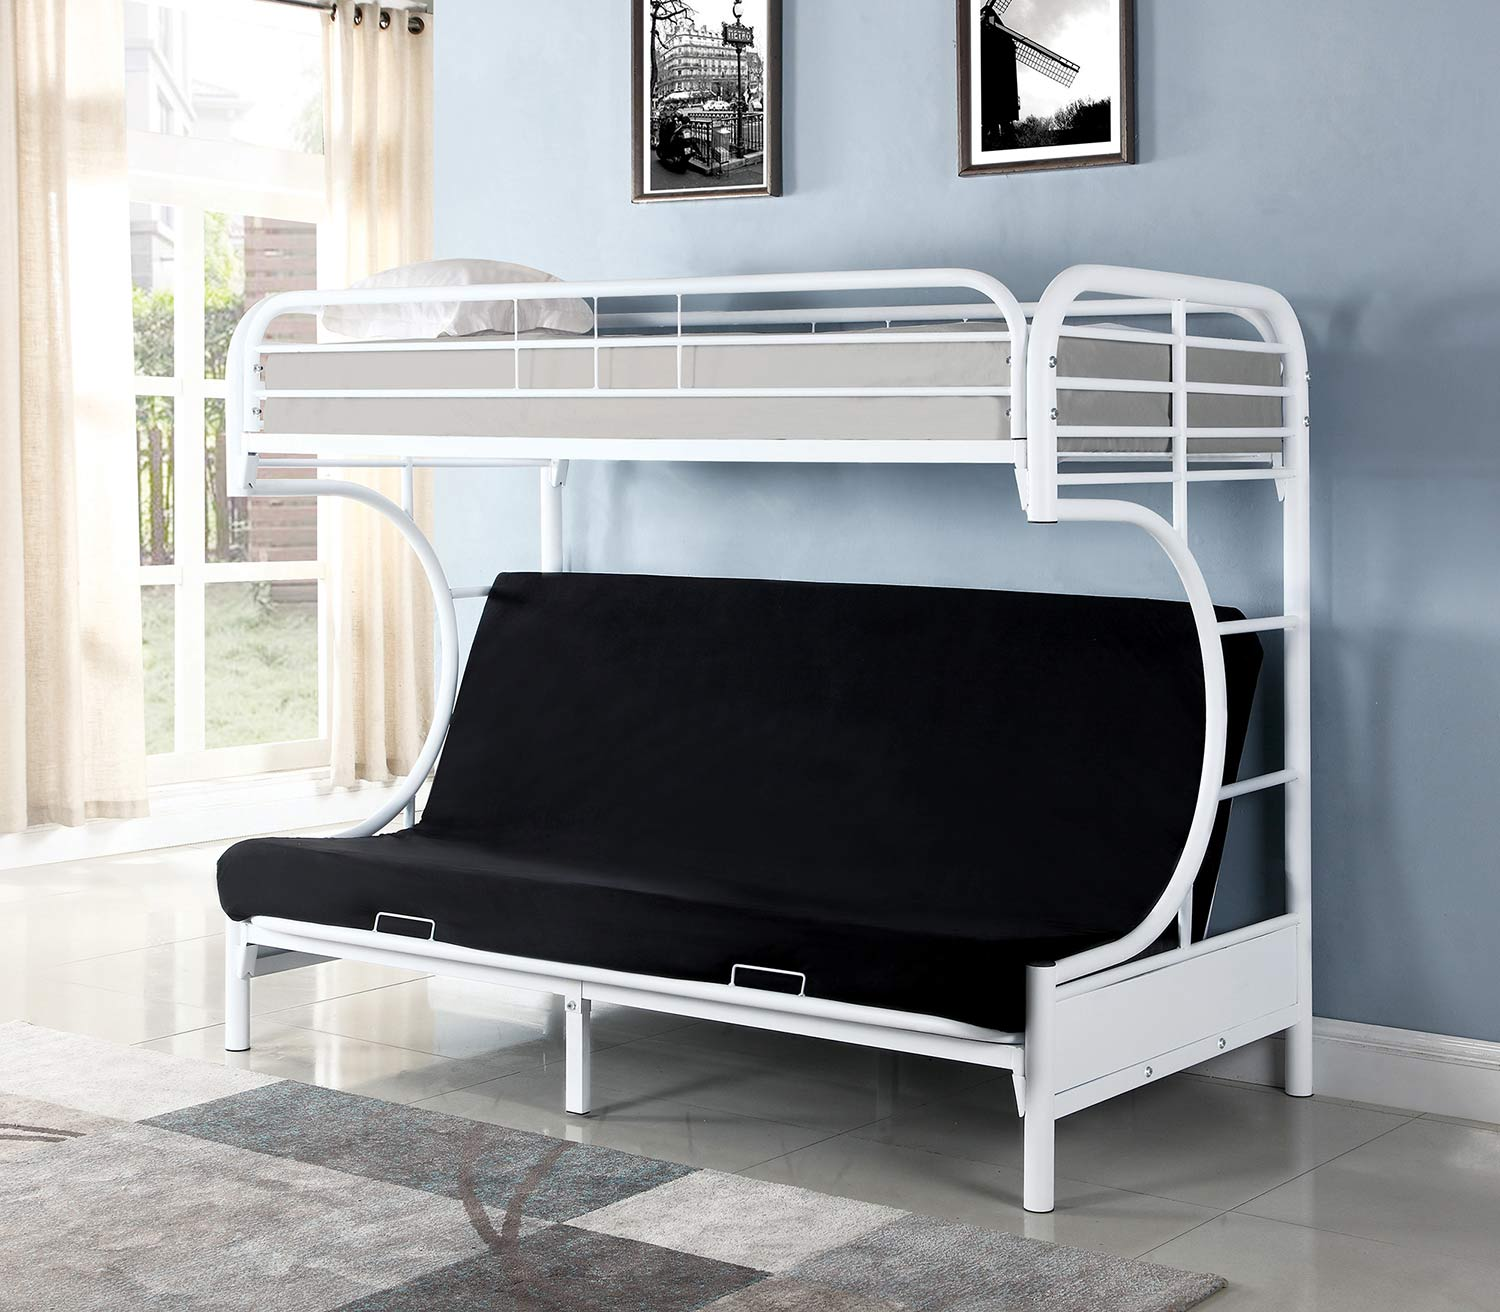 Coaster Atticus Twin/Futon Bunk Bed - White